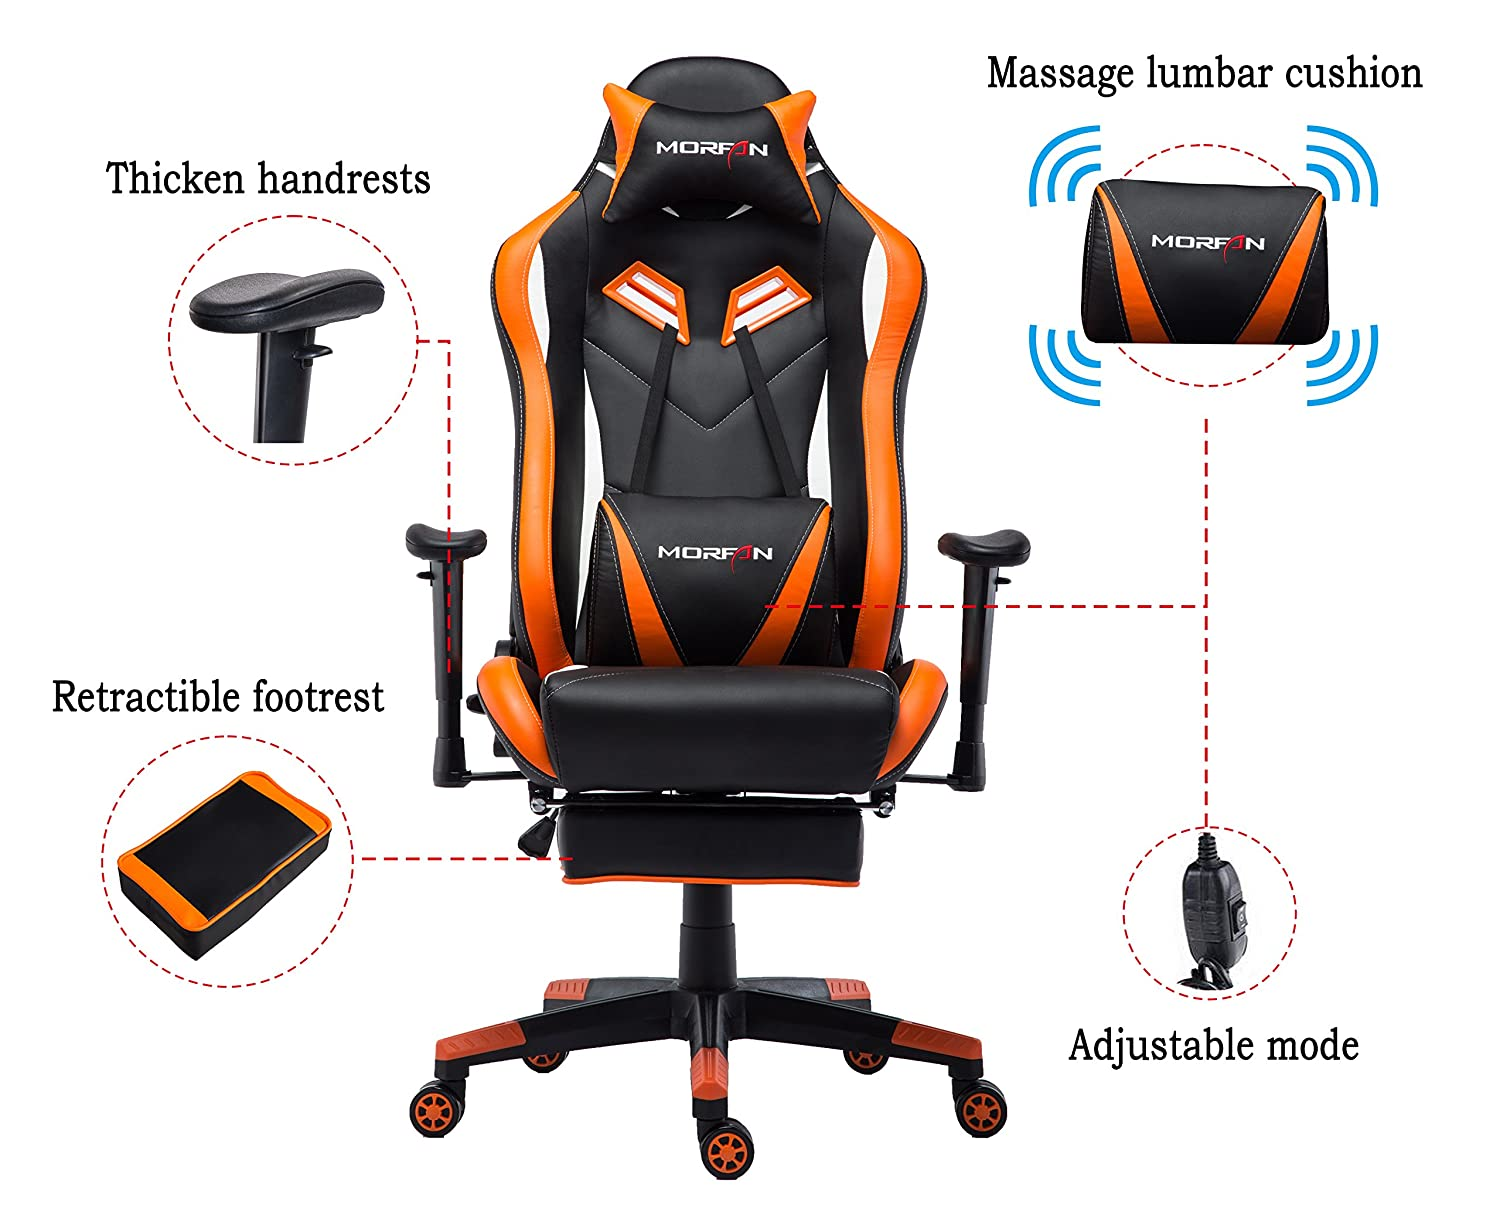 MORFAN Gaming Chair Large Size Ergonomic Executive Office Home Racing Chair with Lumbar Massager Support Adjustable Headrest Pillow Retractable Footrest Black Orange